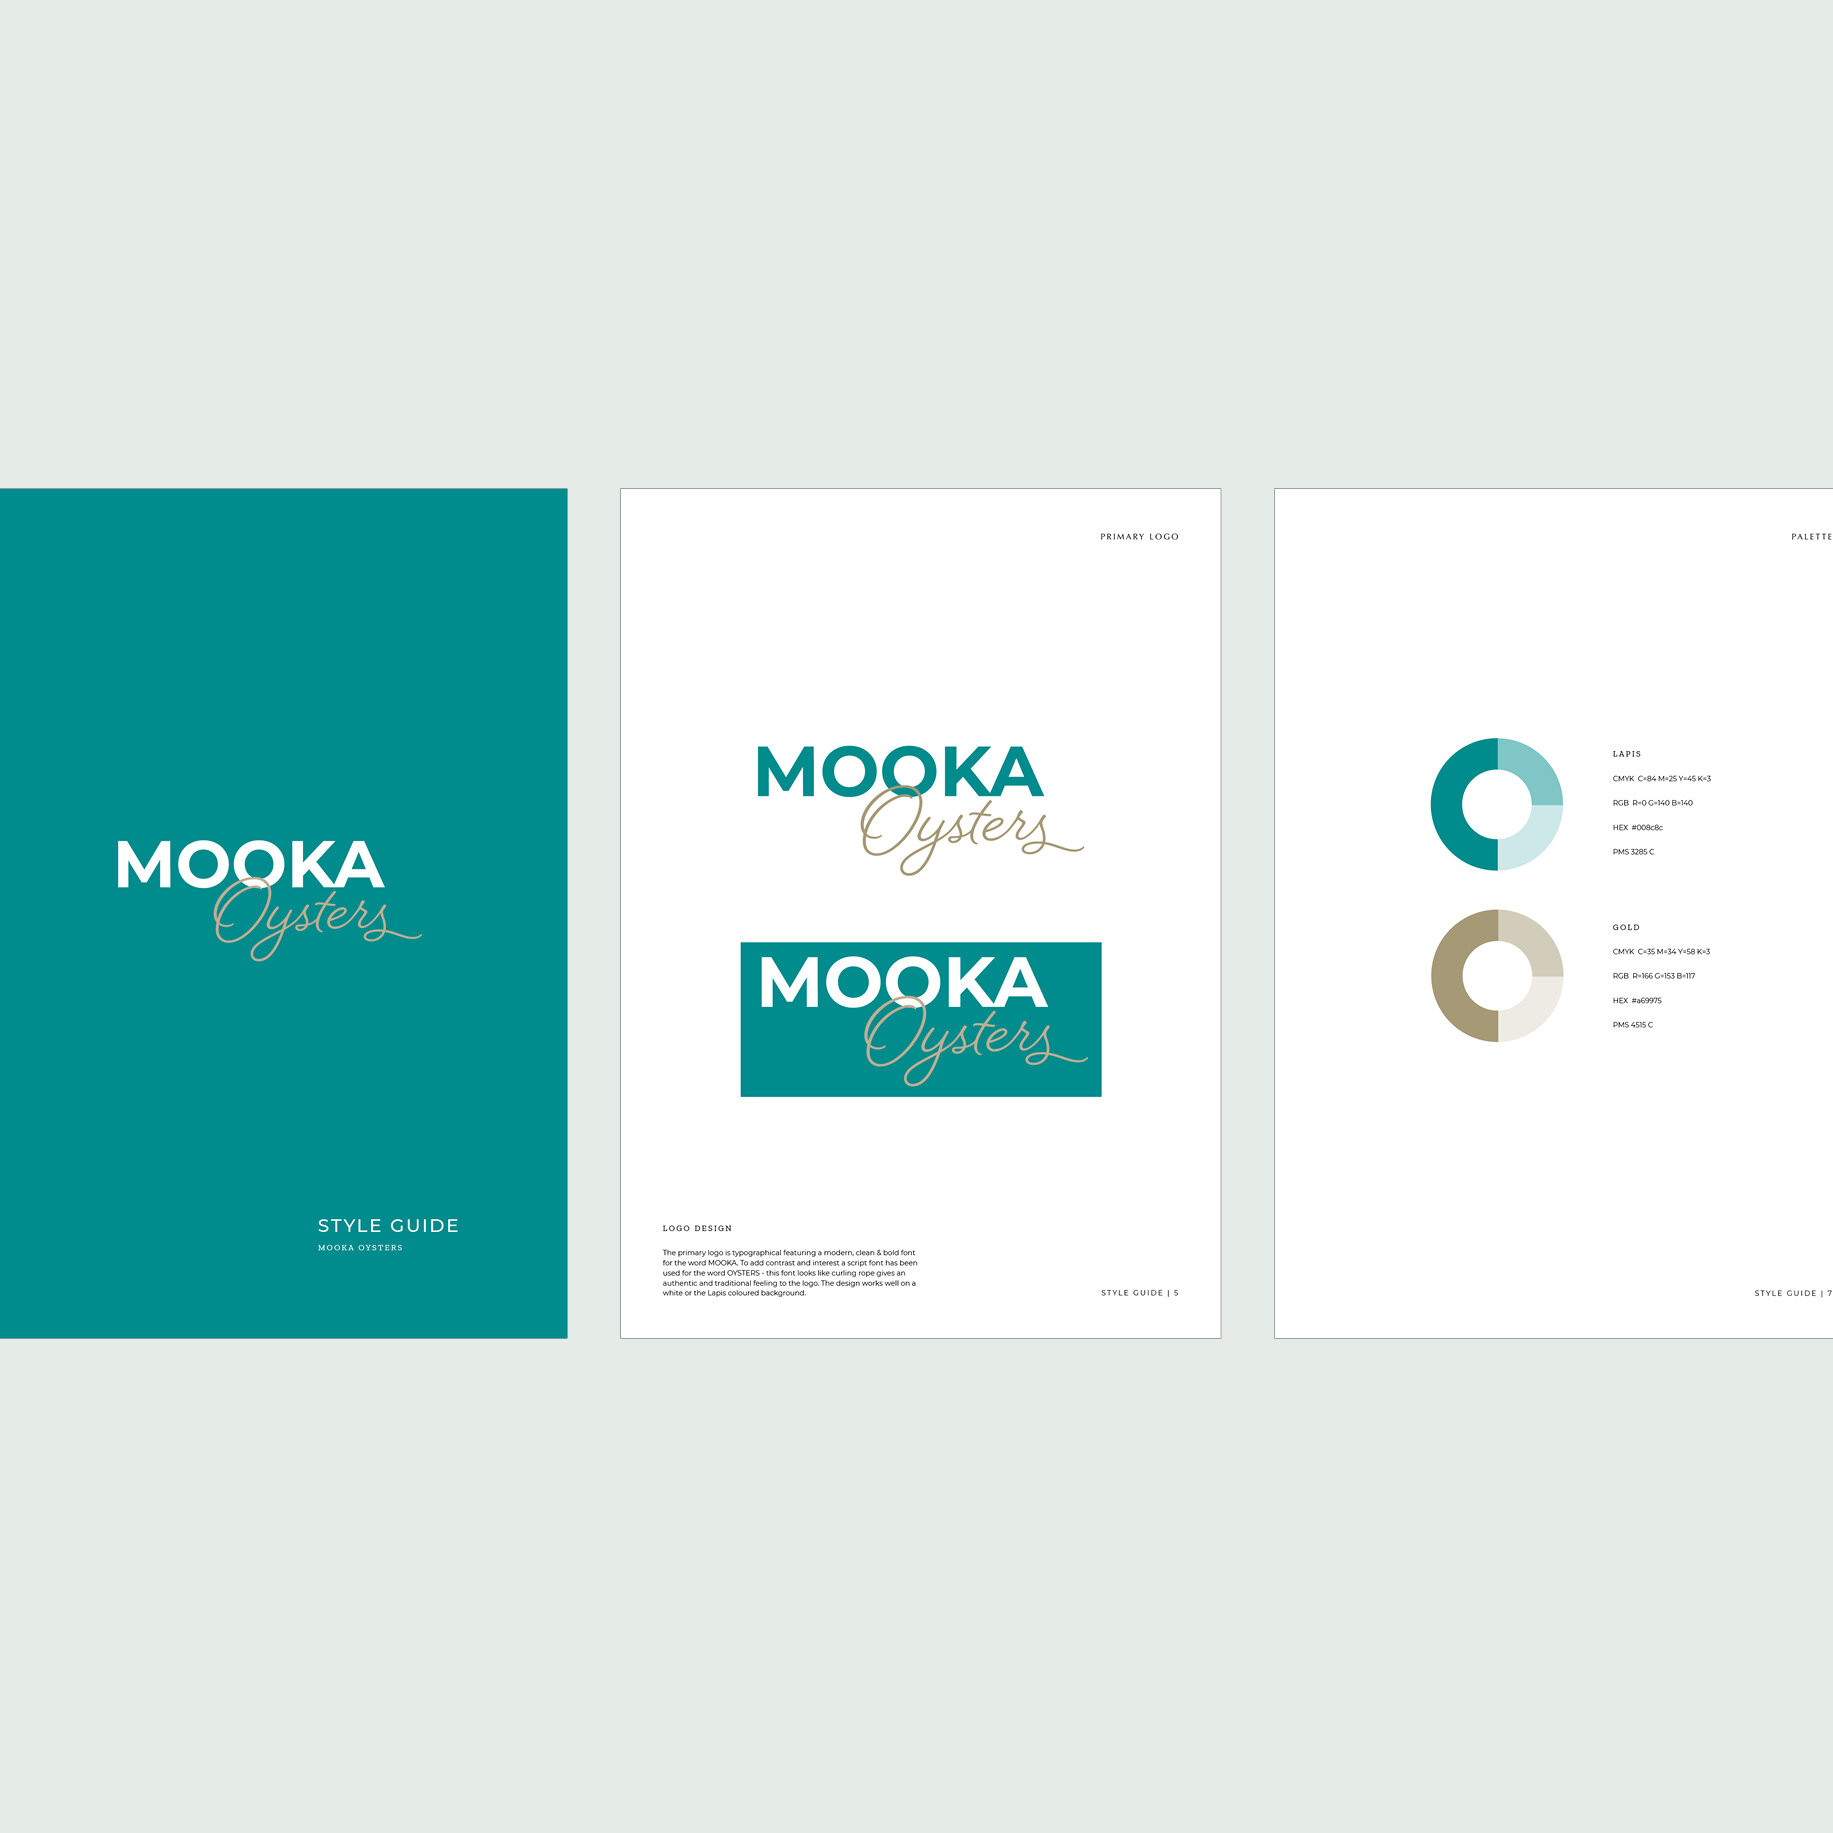 Mooka Oysters Style Guide